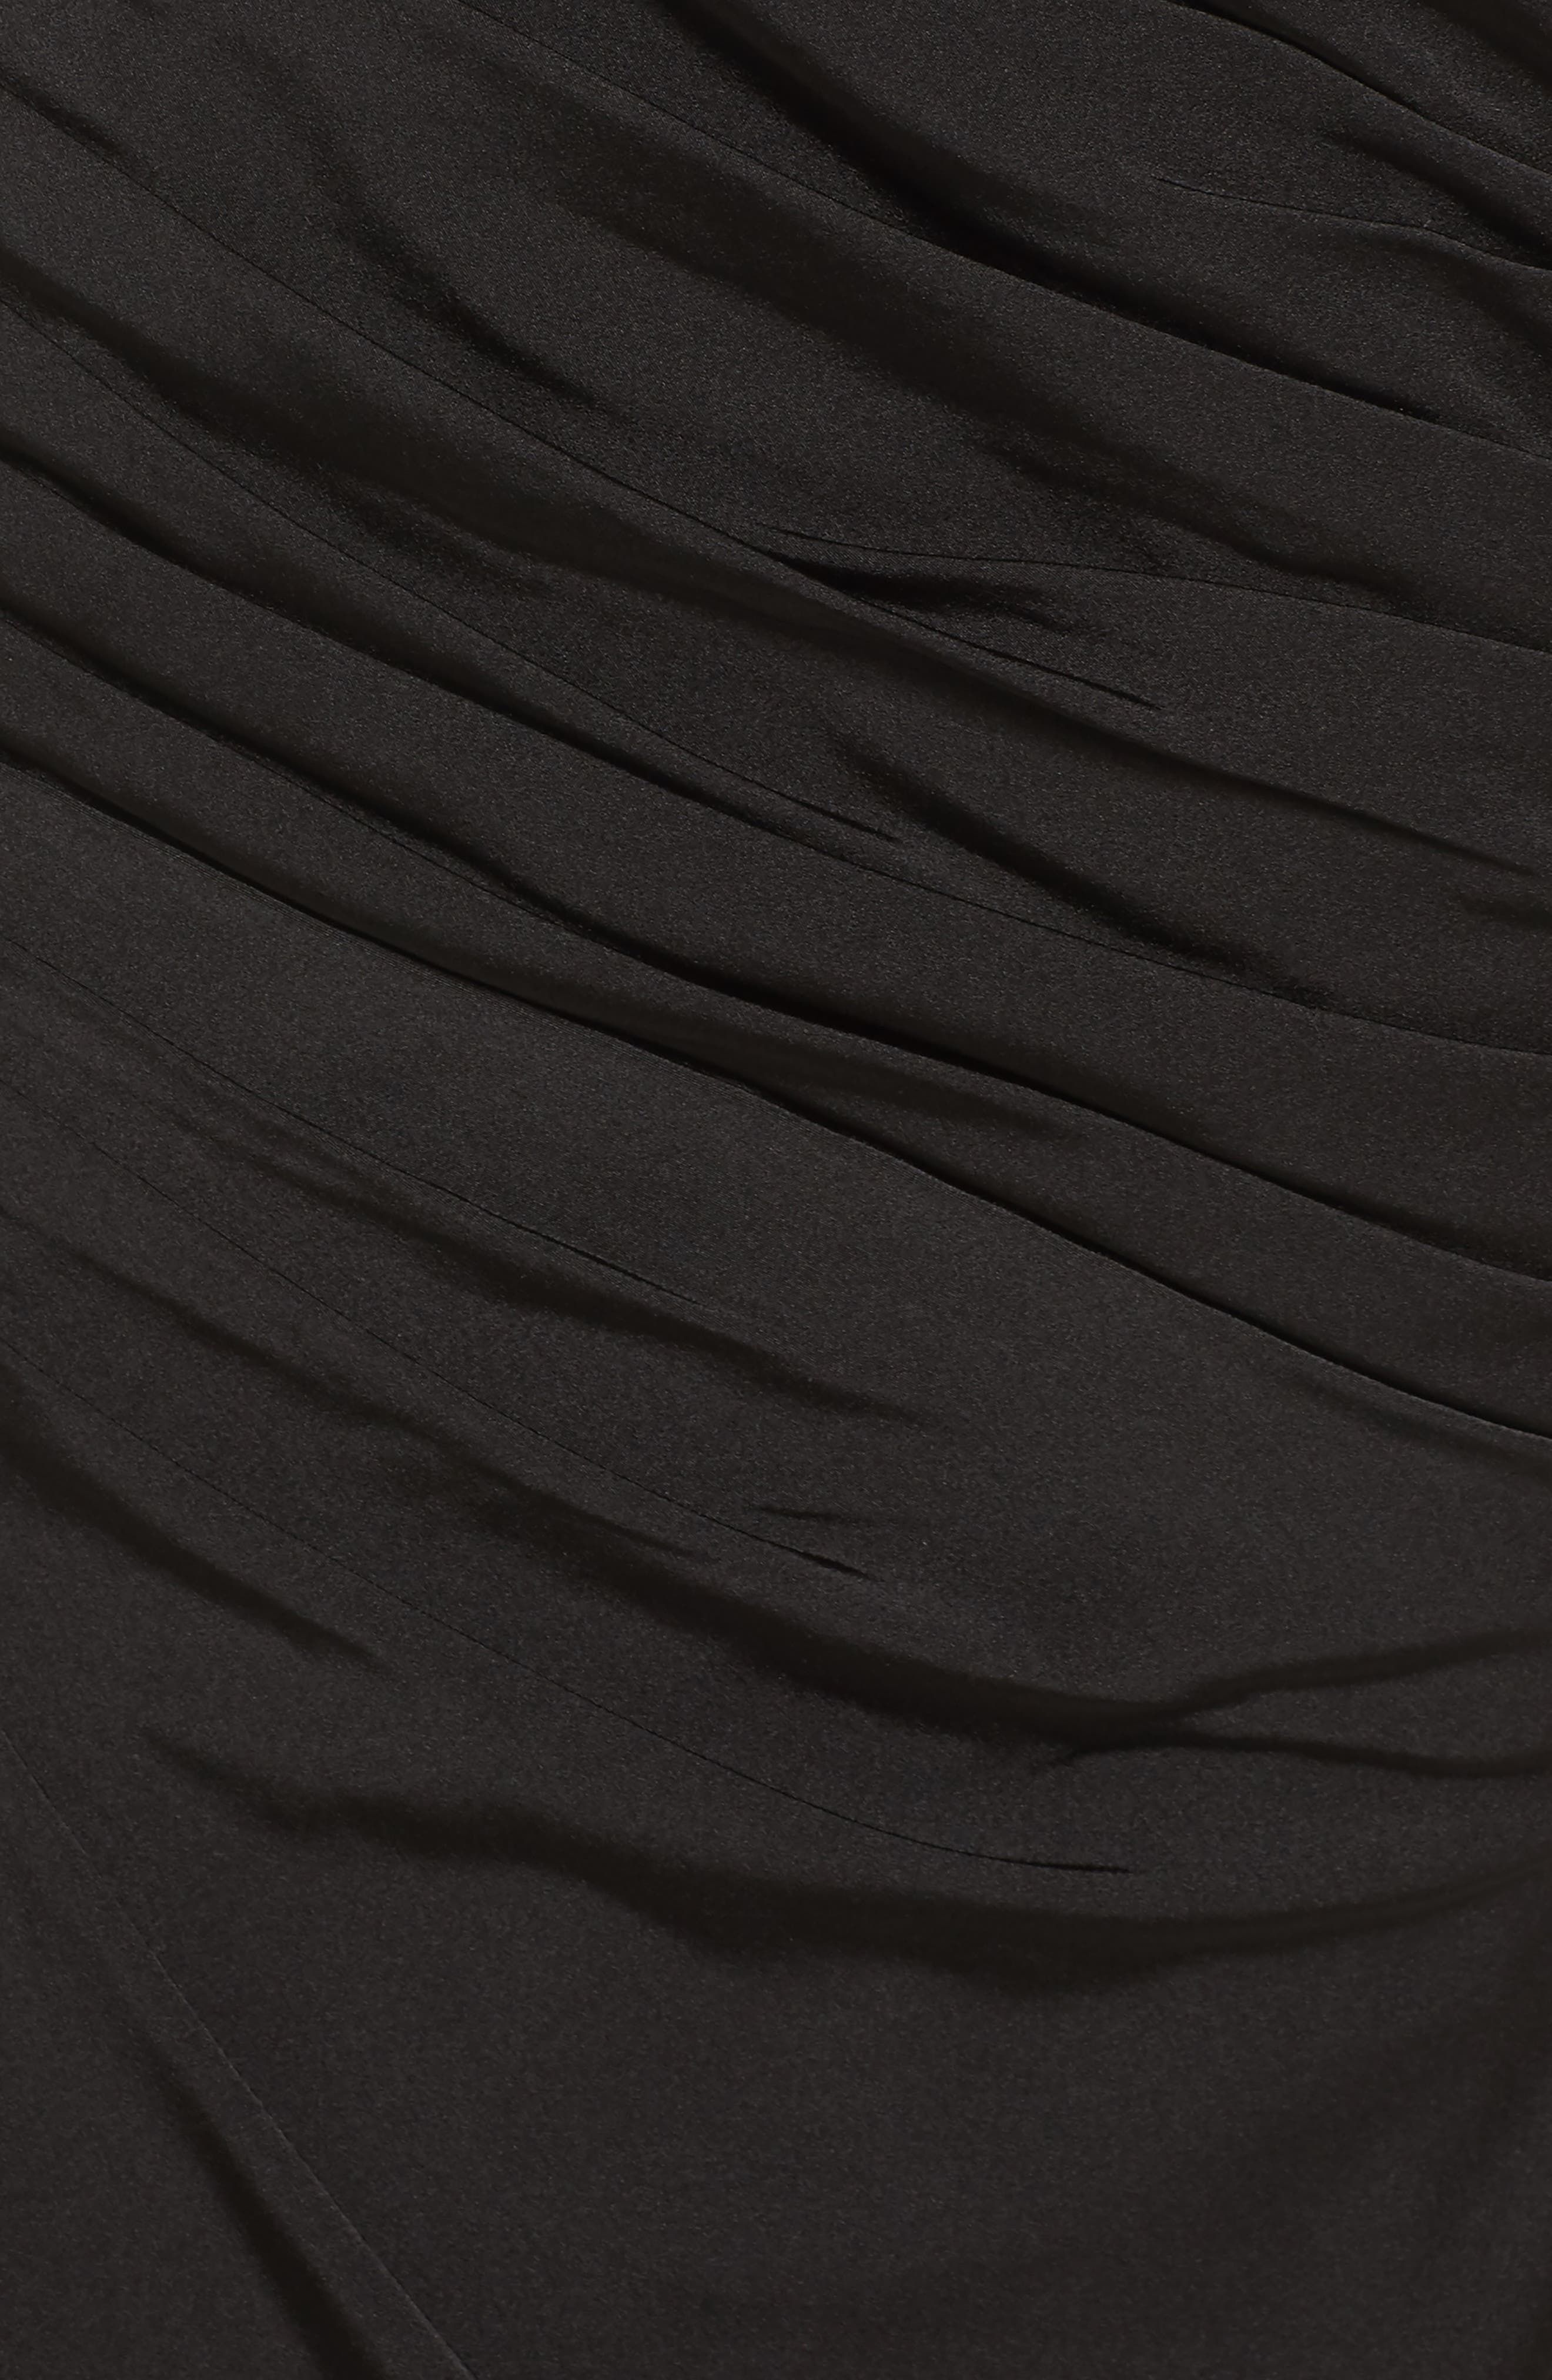 Sheer Sleeve Gown,                             Alternate thumbnail 5, color,                             Black